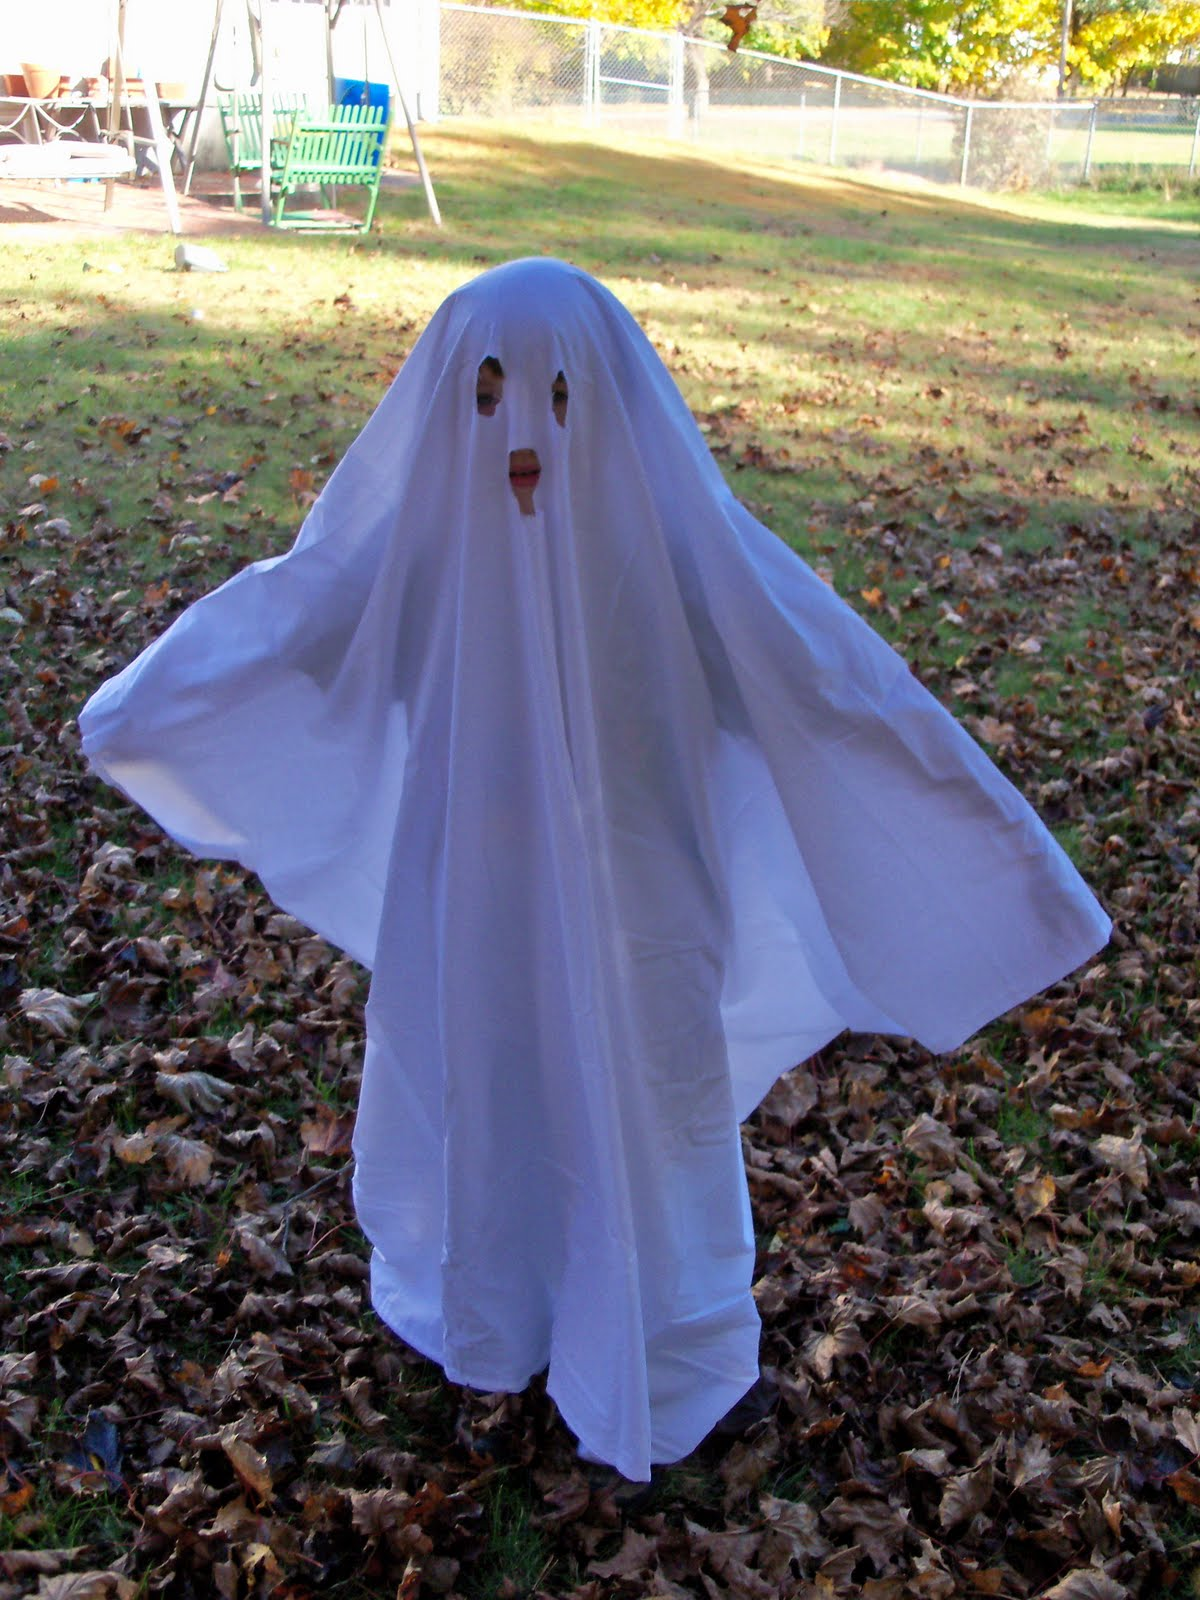 Textiles4you Halloween Round Up & Homemade Ghost Costume - Meningrey